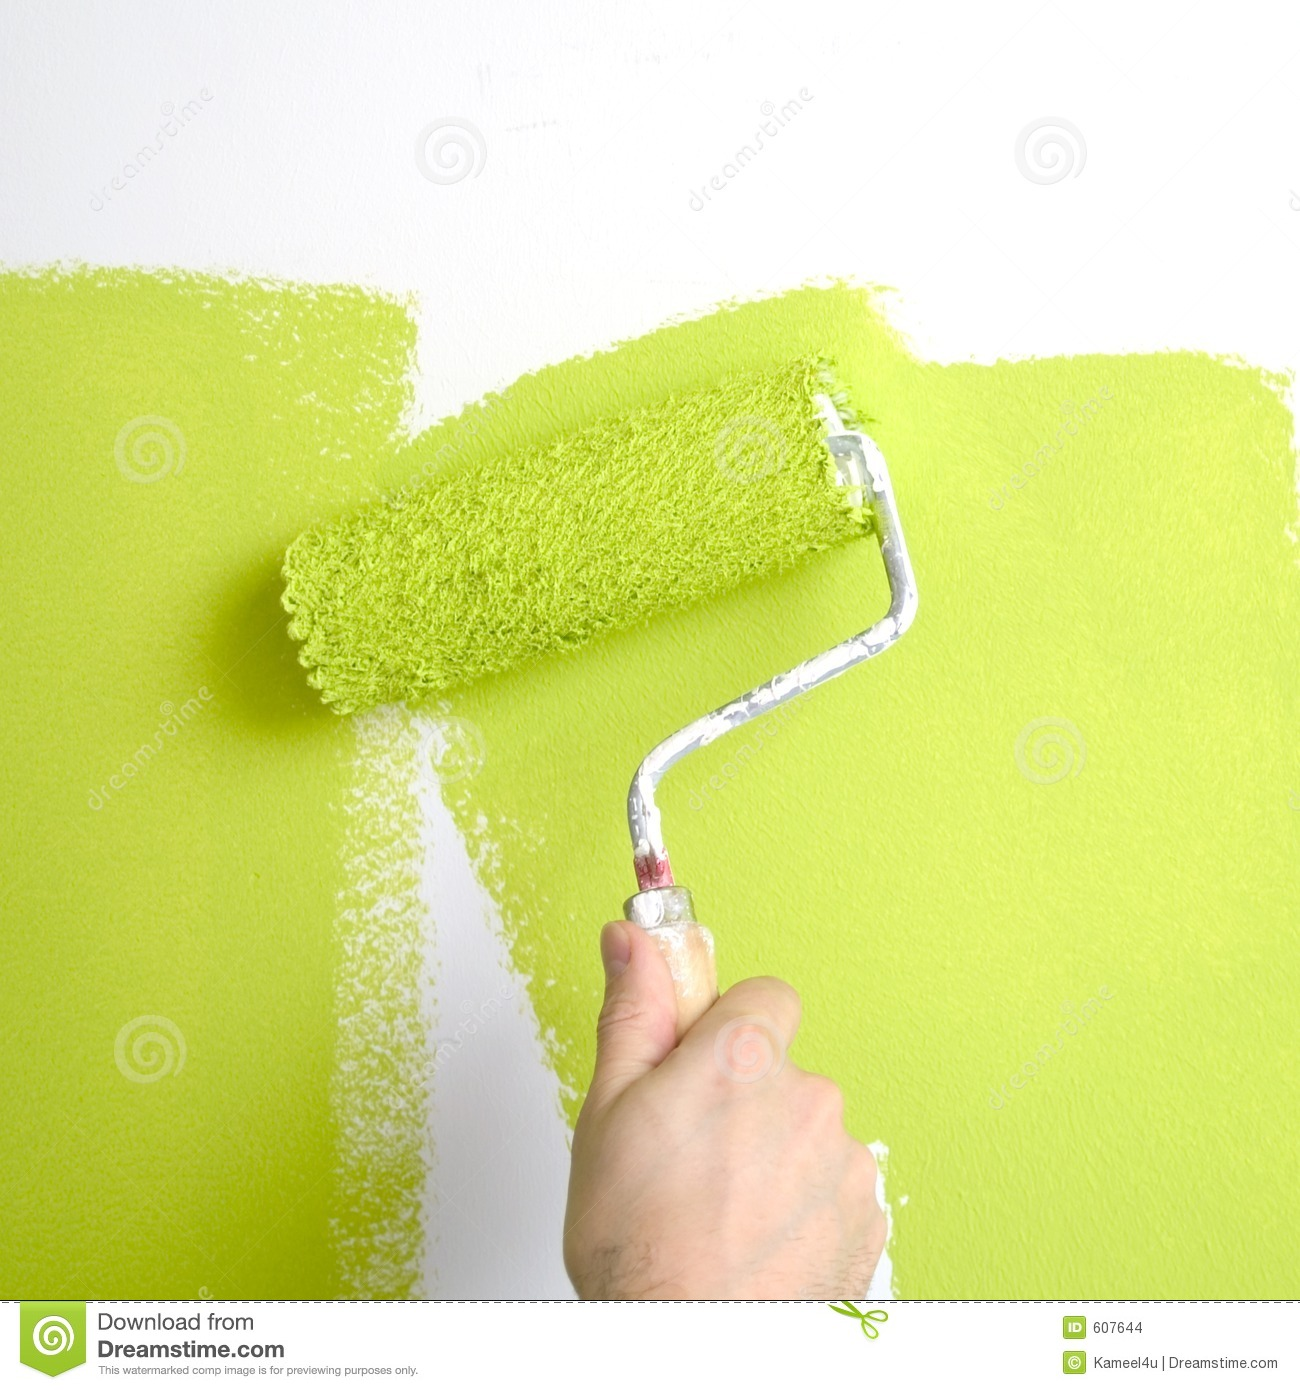 painting a wall stock images - image: 607644